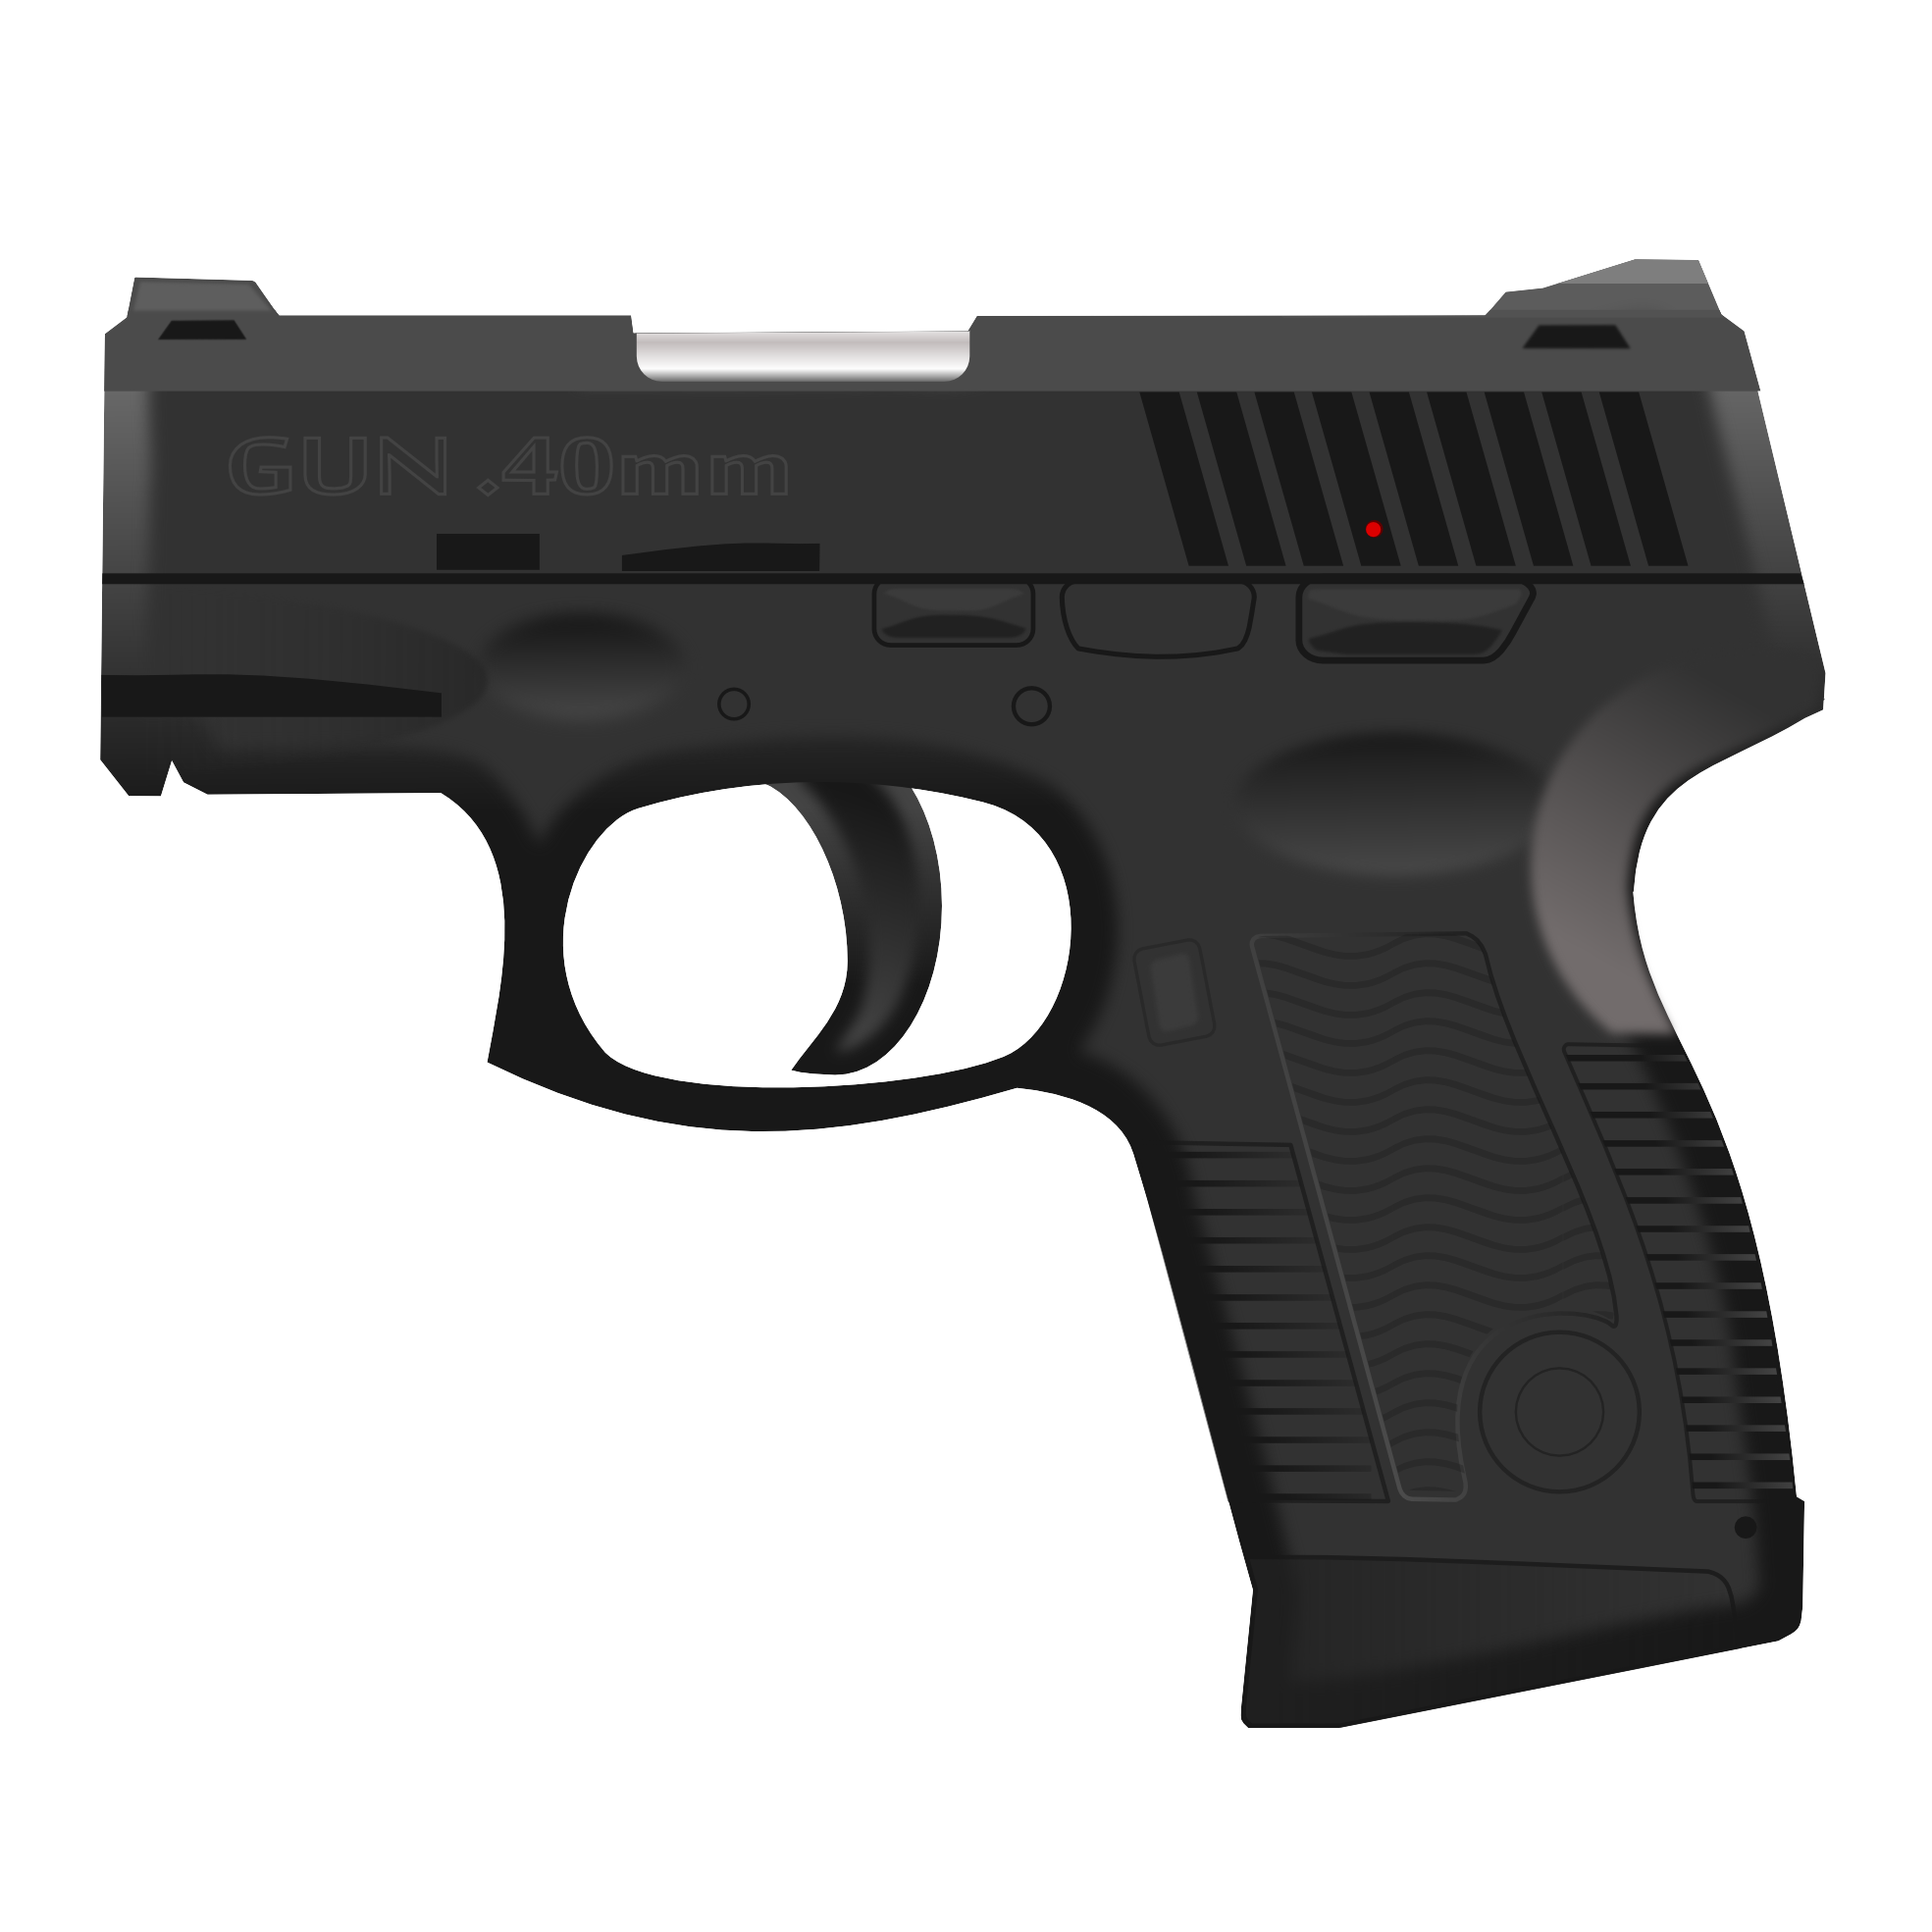 Pin by Next on Download | Hand guns, Guns, Png images